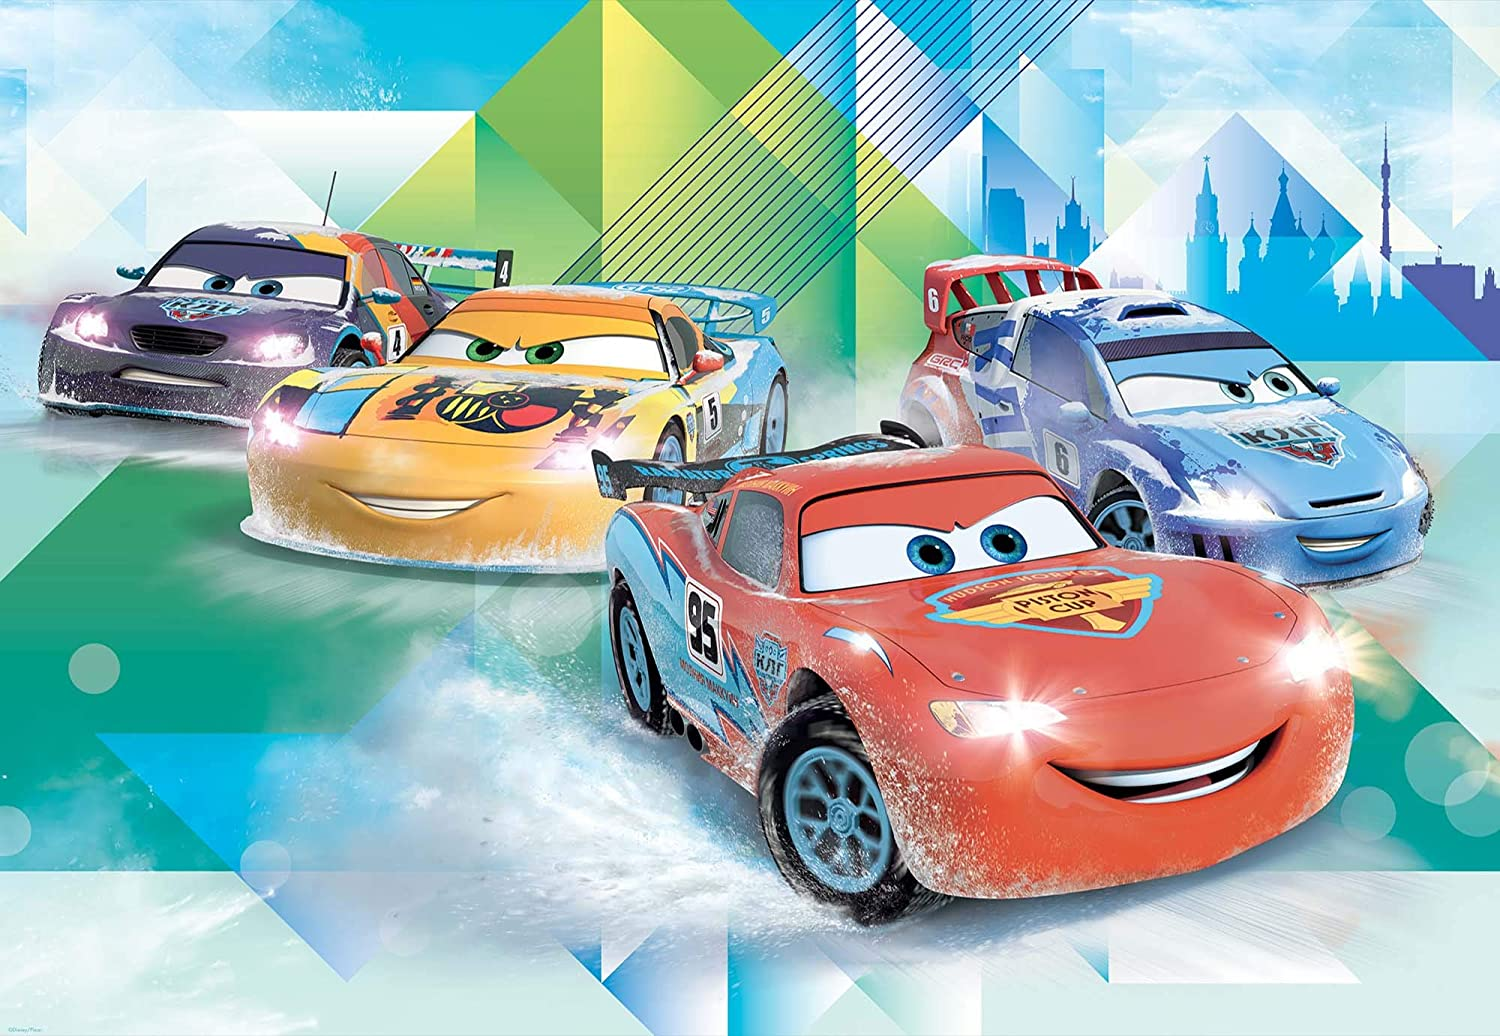 Disney Cars Lightning Mcqueen Camino Photo Wallpaper Wall Mural Giant Wall Poster Xl 254cm X 184cm Standard Paper Not Easyinstall 2